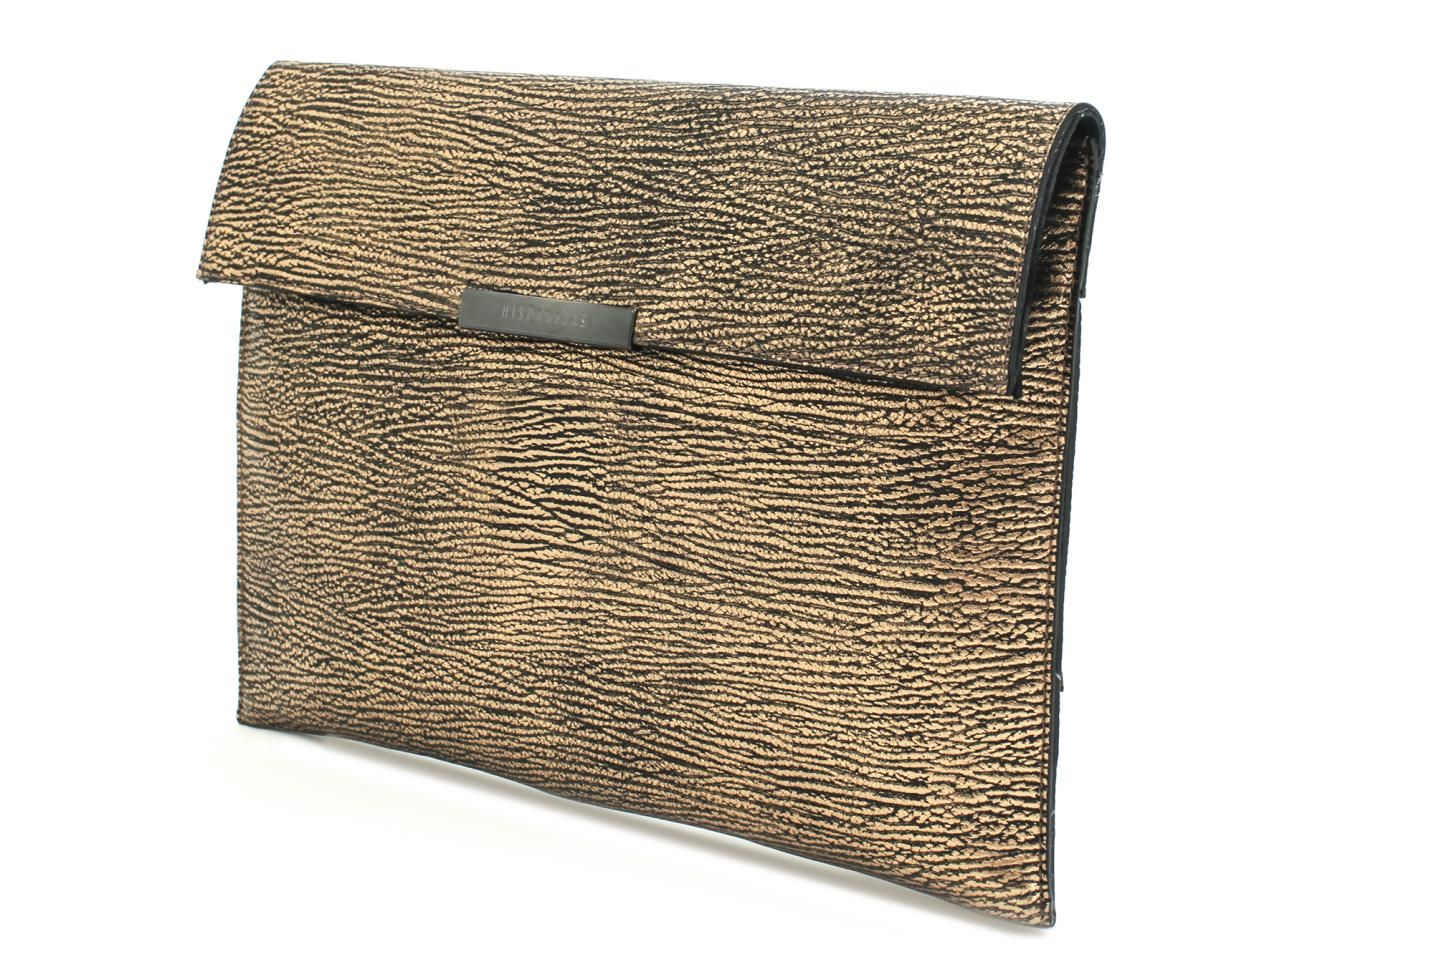 Gold leather clutch by Hispanitas with ref. MBI52202